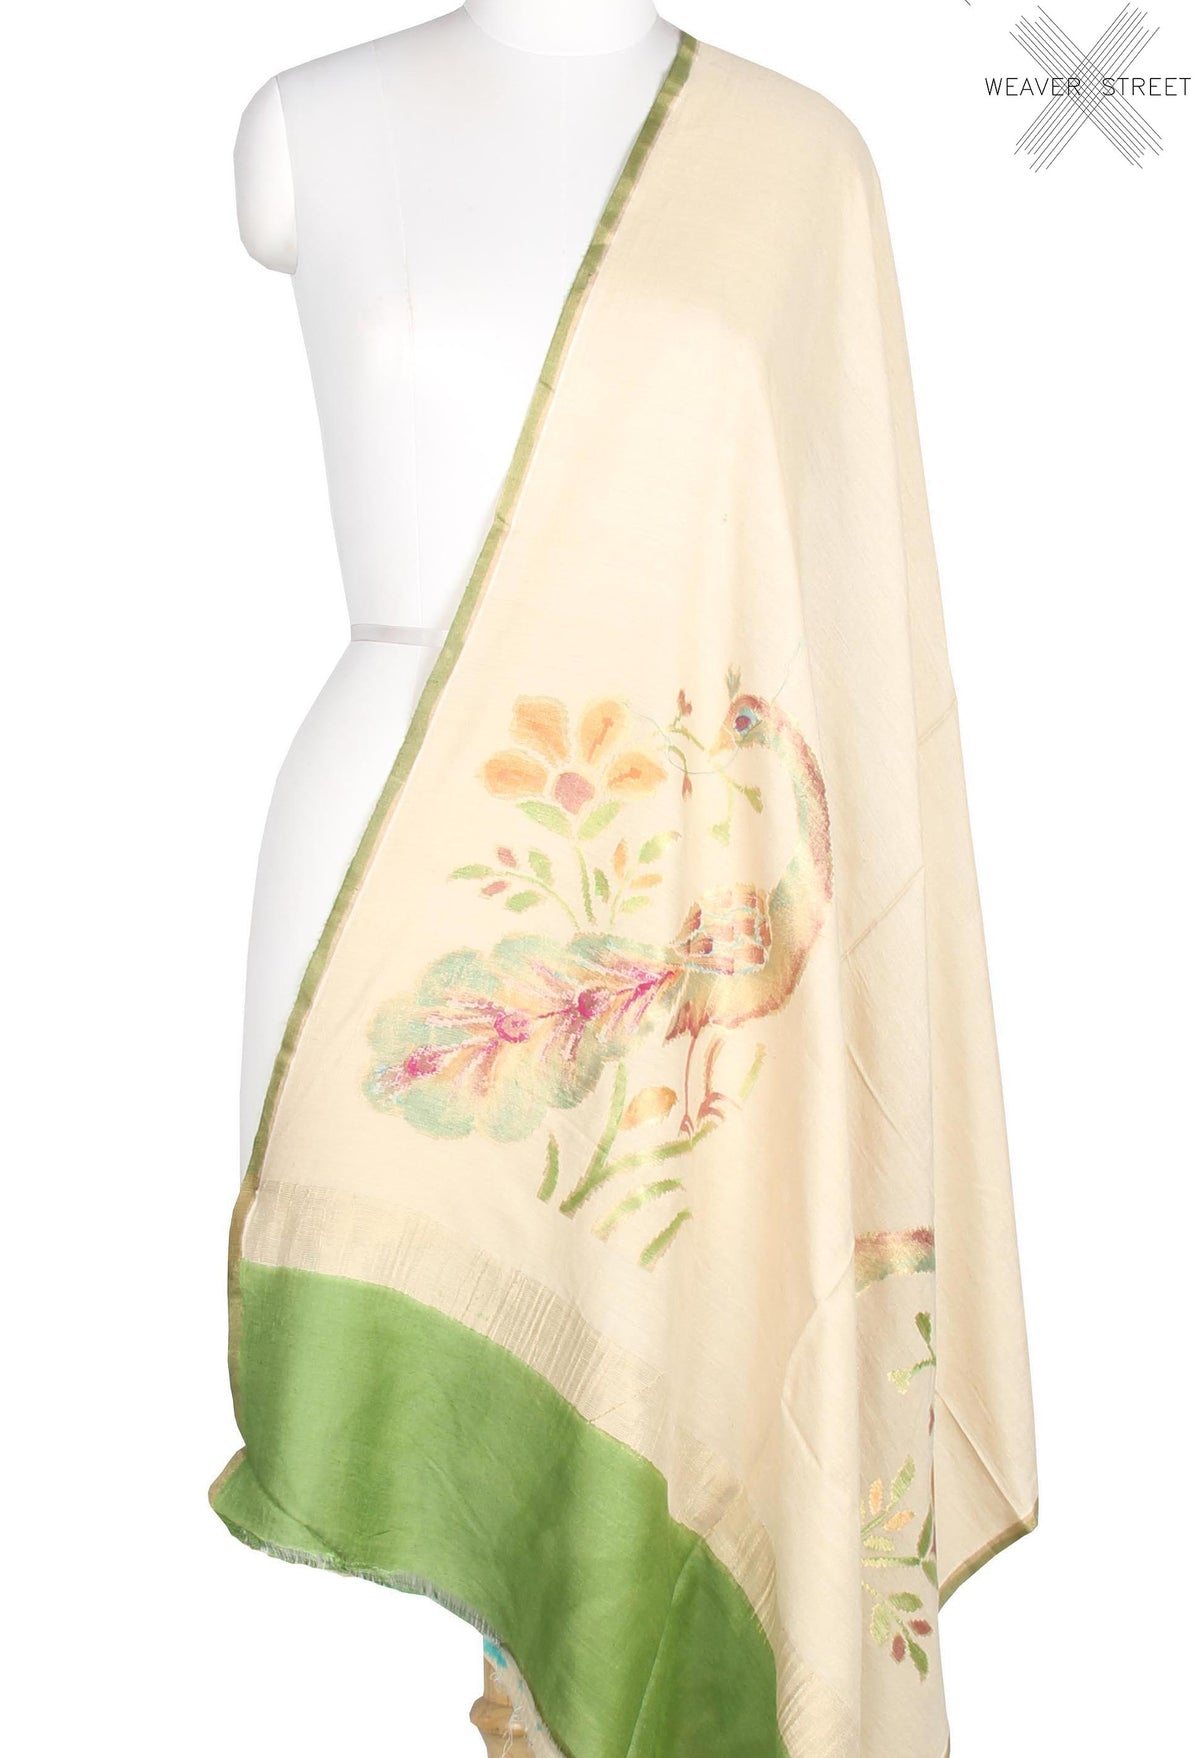 Off White Muga Silk Handwoven Banarasi Dupatta with peacock boota konia (1) main